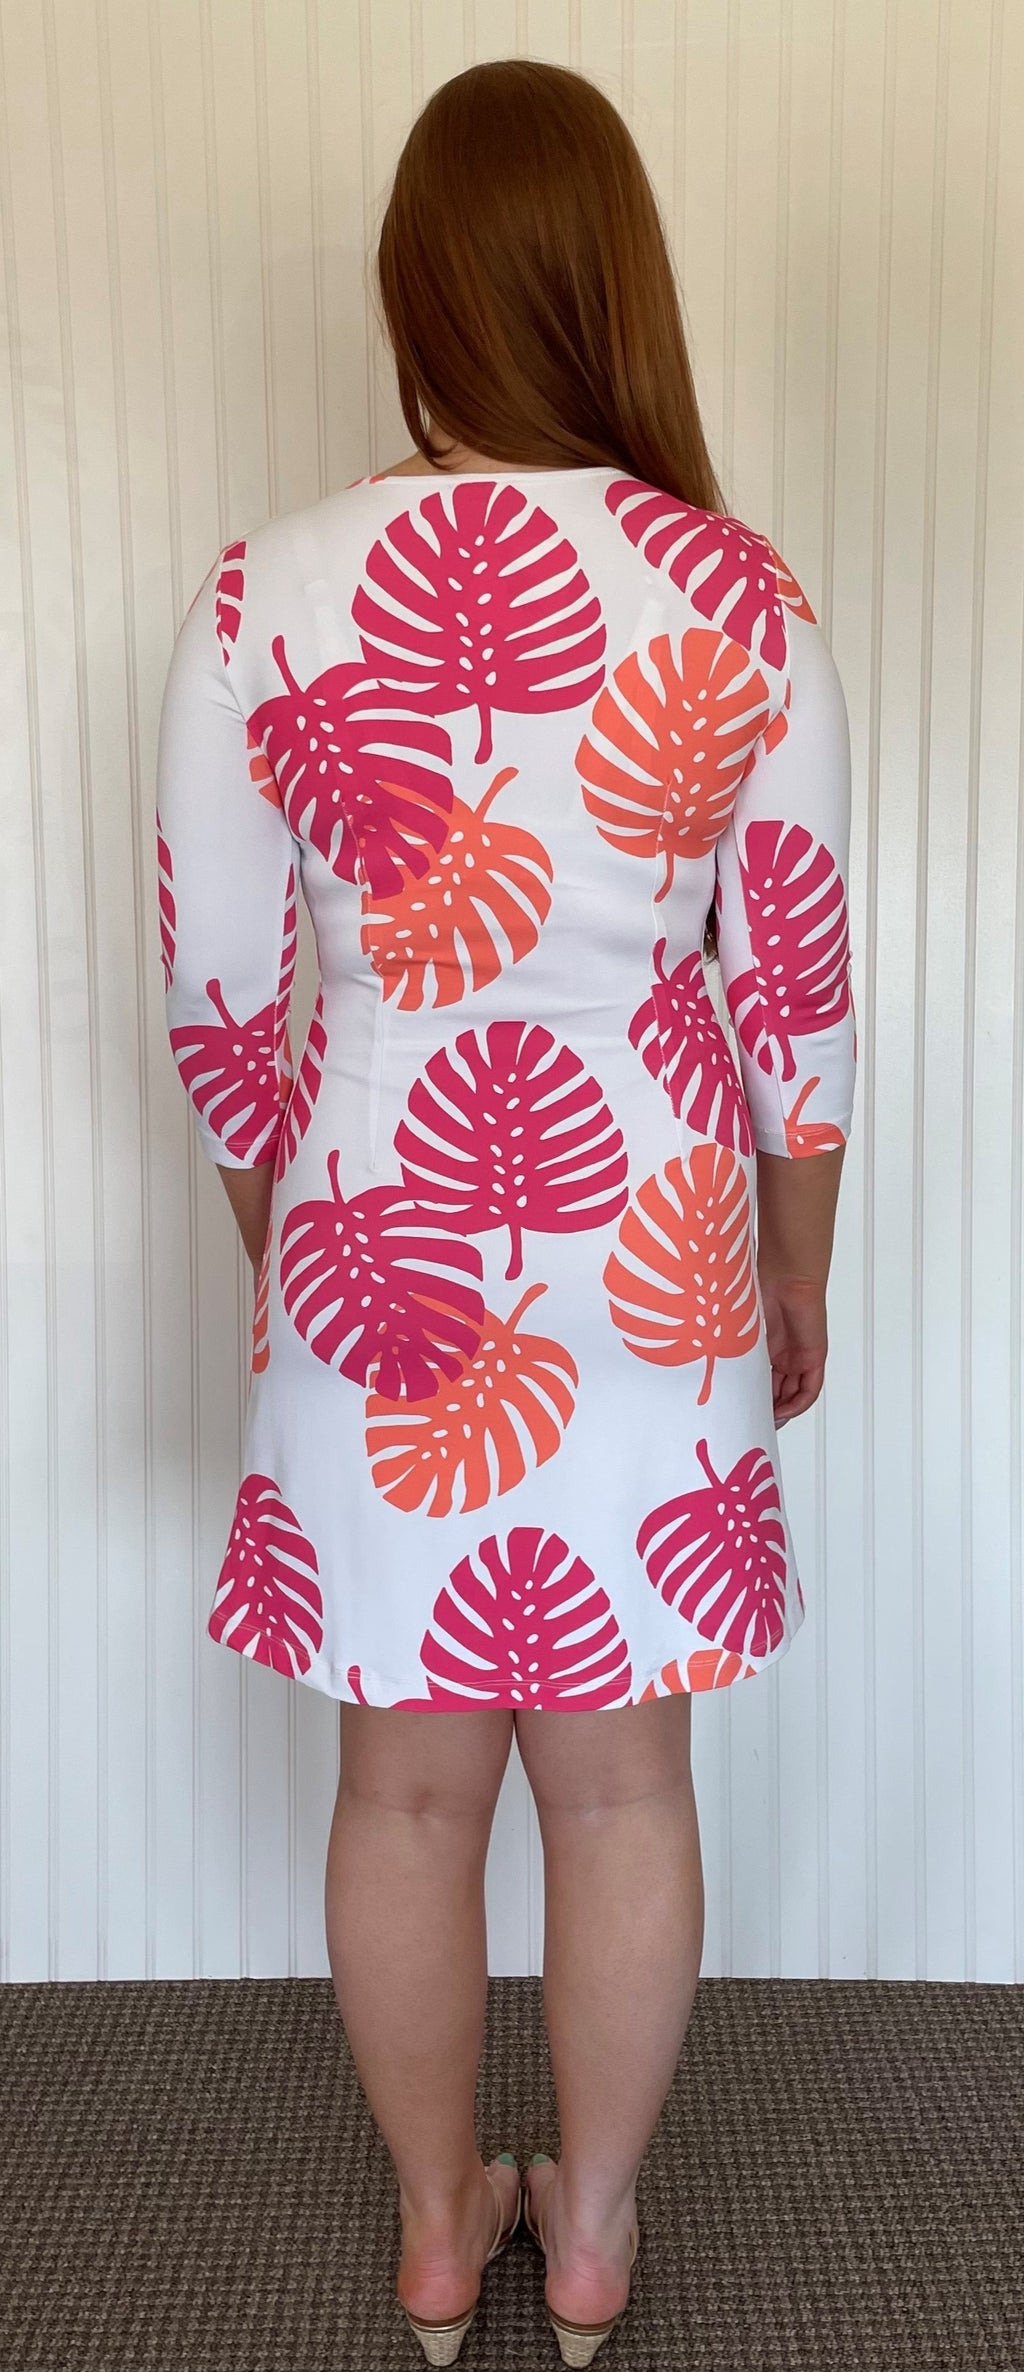 Grace Dress - Hot Pink/Salmon Dancing Palms - SAMPLE FINAL SALE